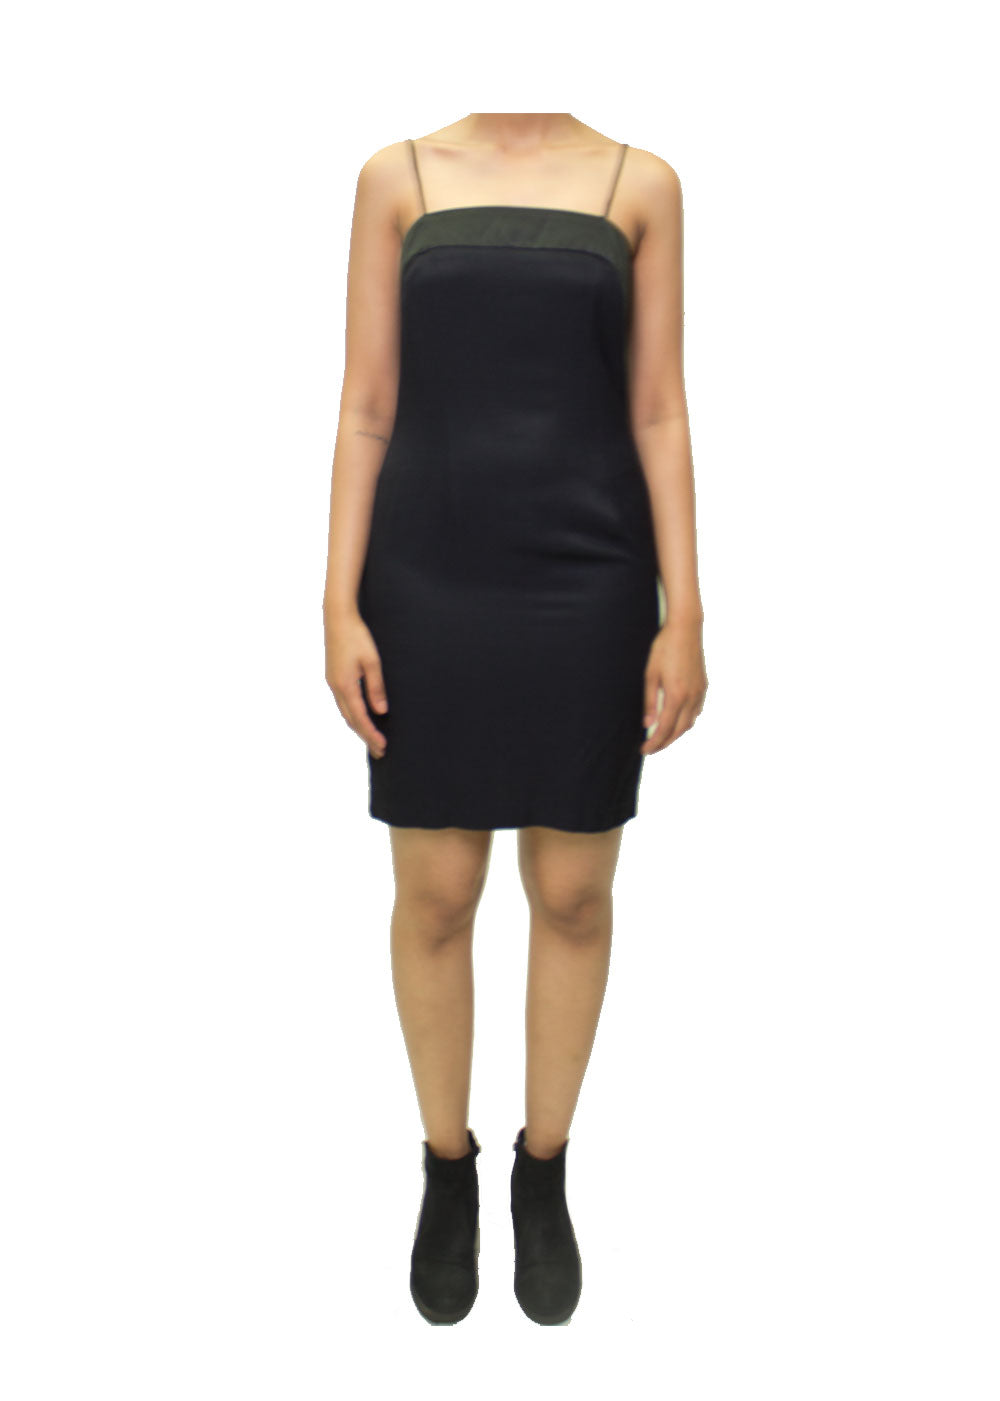 Alicia Strapy Black Dress